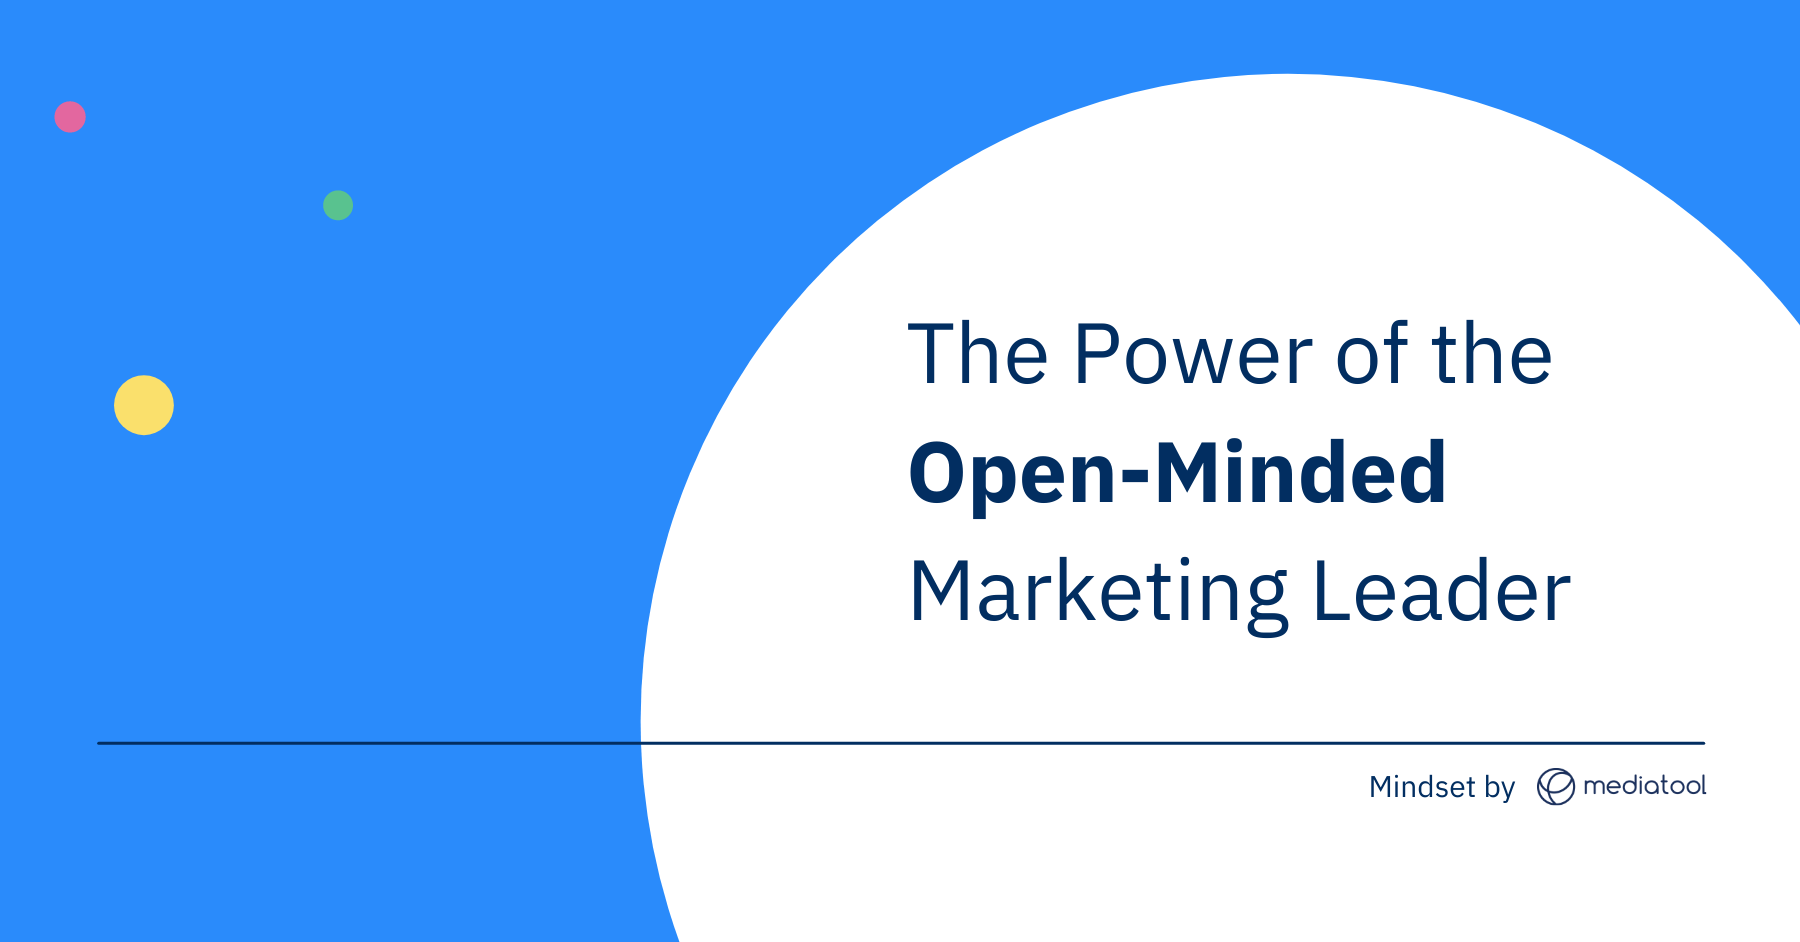 Mindset by Mediatool: The Power of the Open Minded Marketing Leader